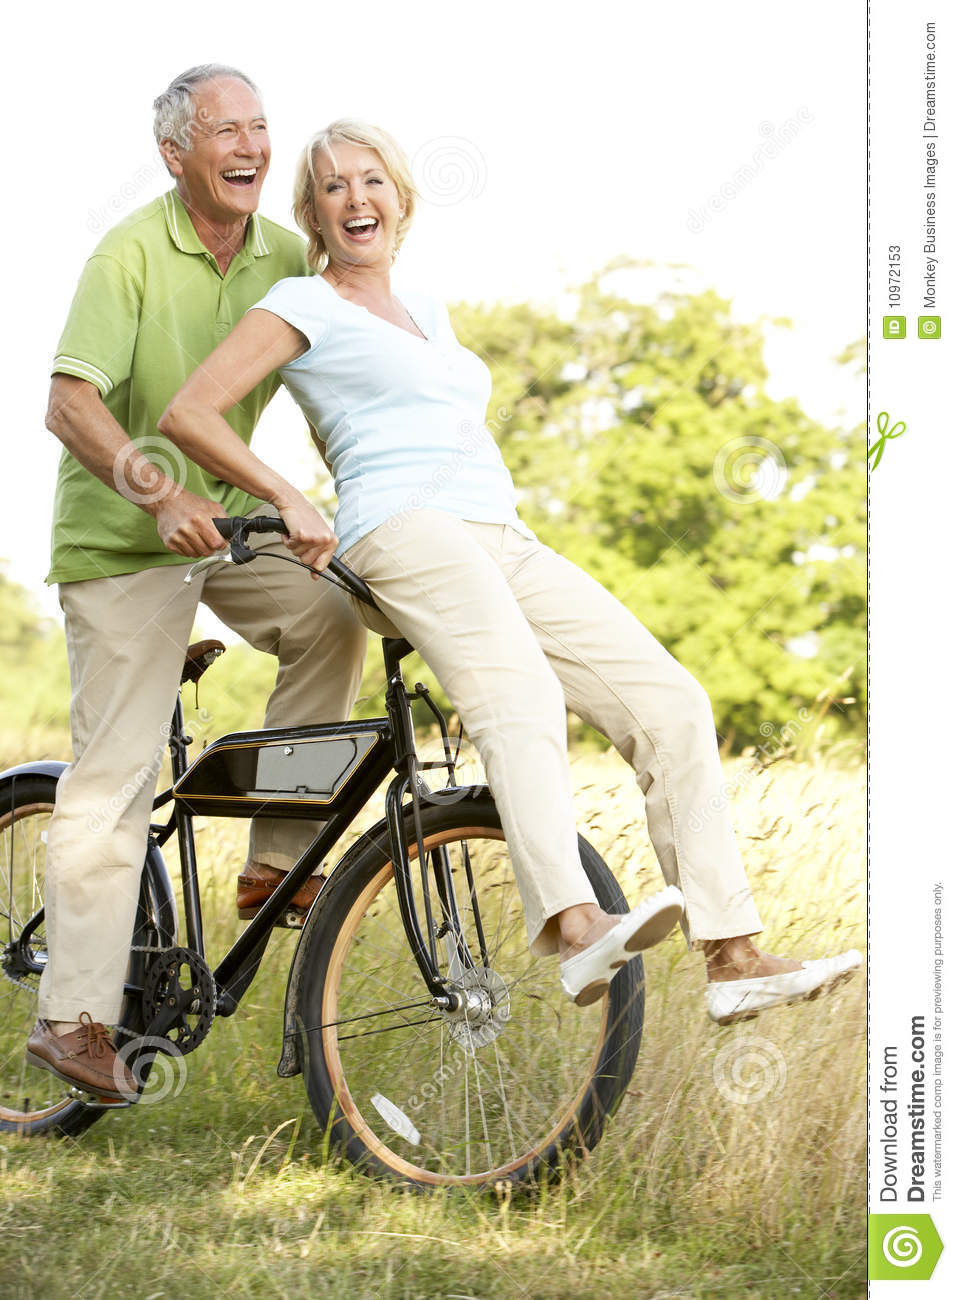 mature couple riding bike in countryside stock image - image of